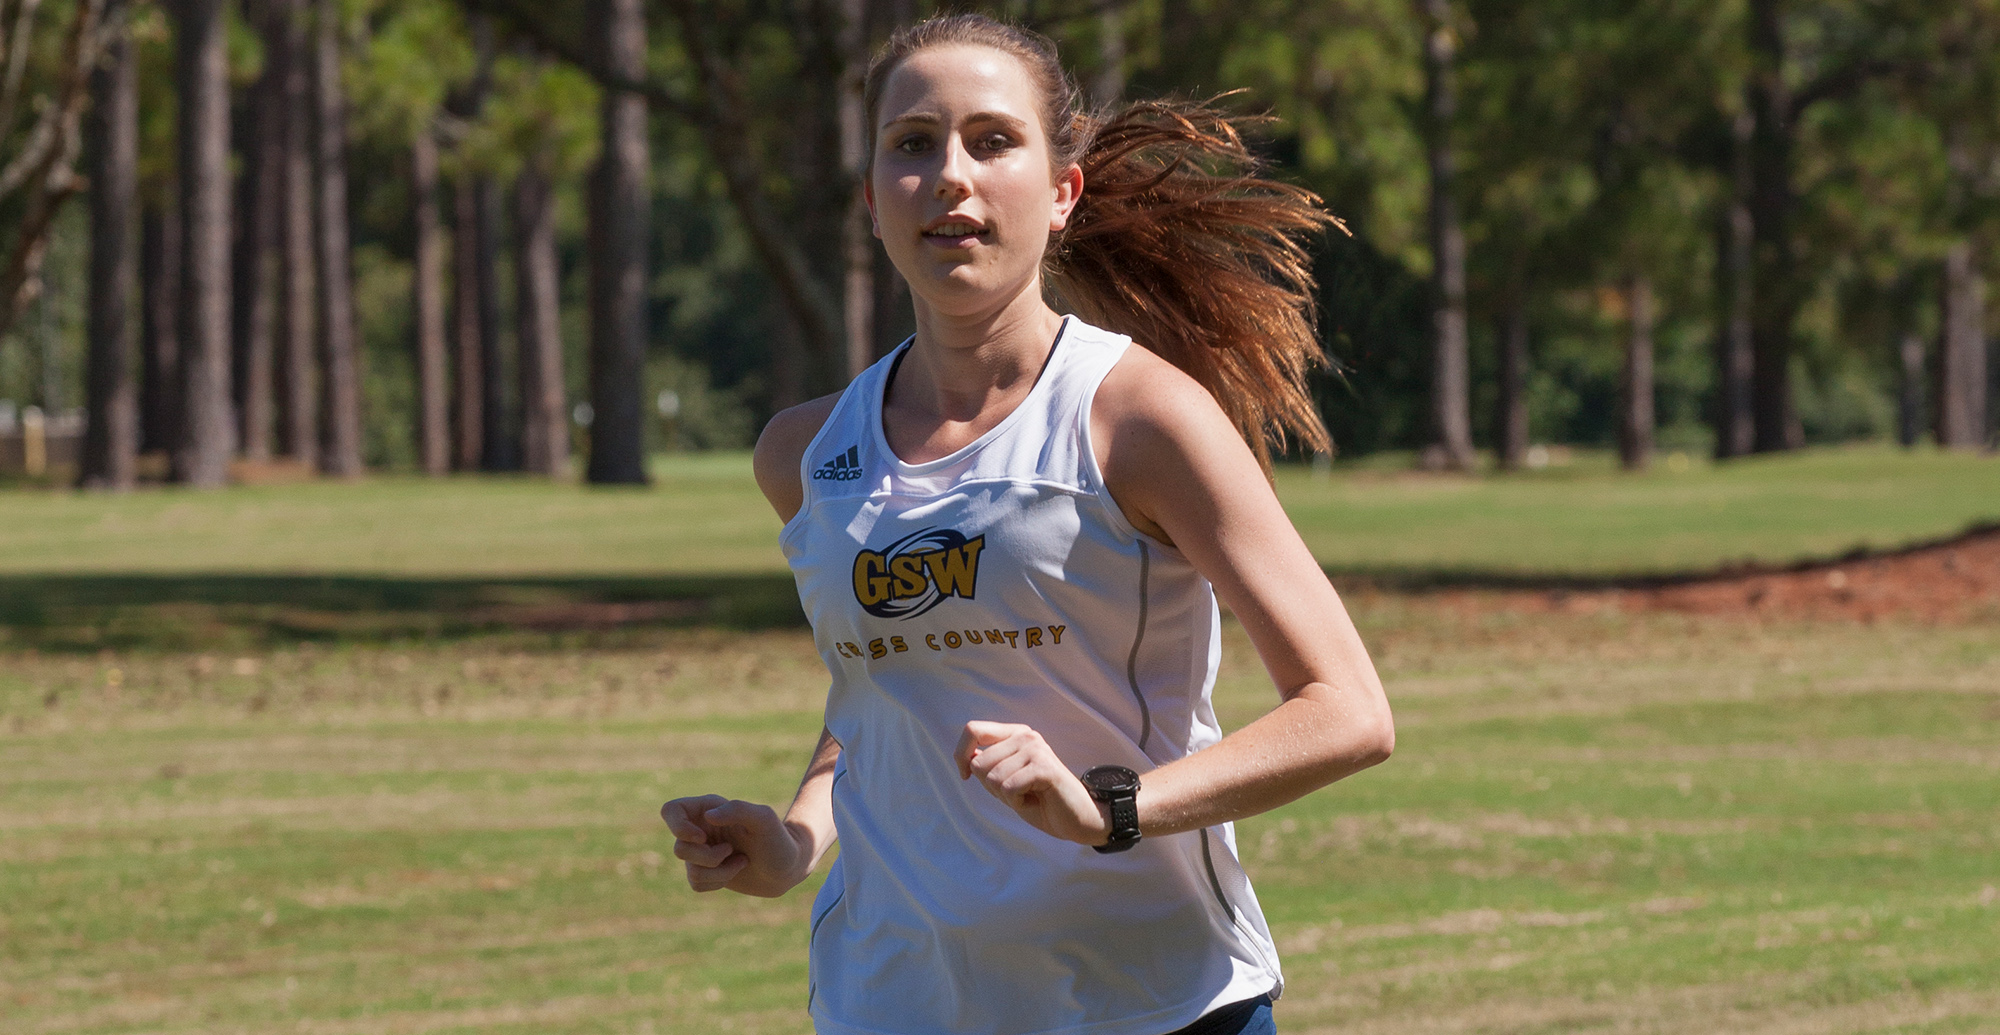 McGarr Leads GSW at Loaded Berry Invite